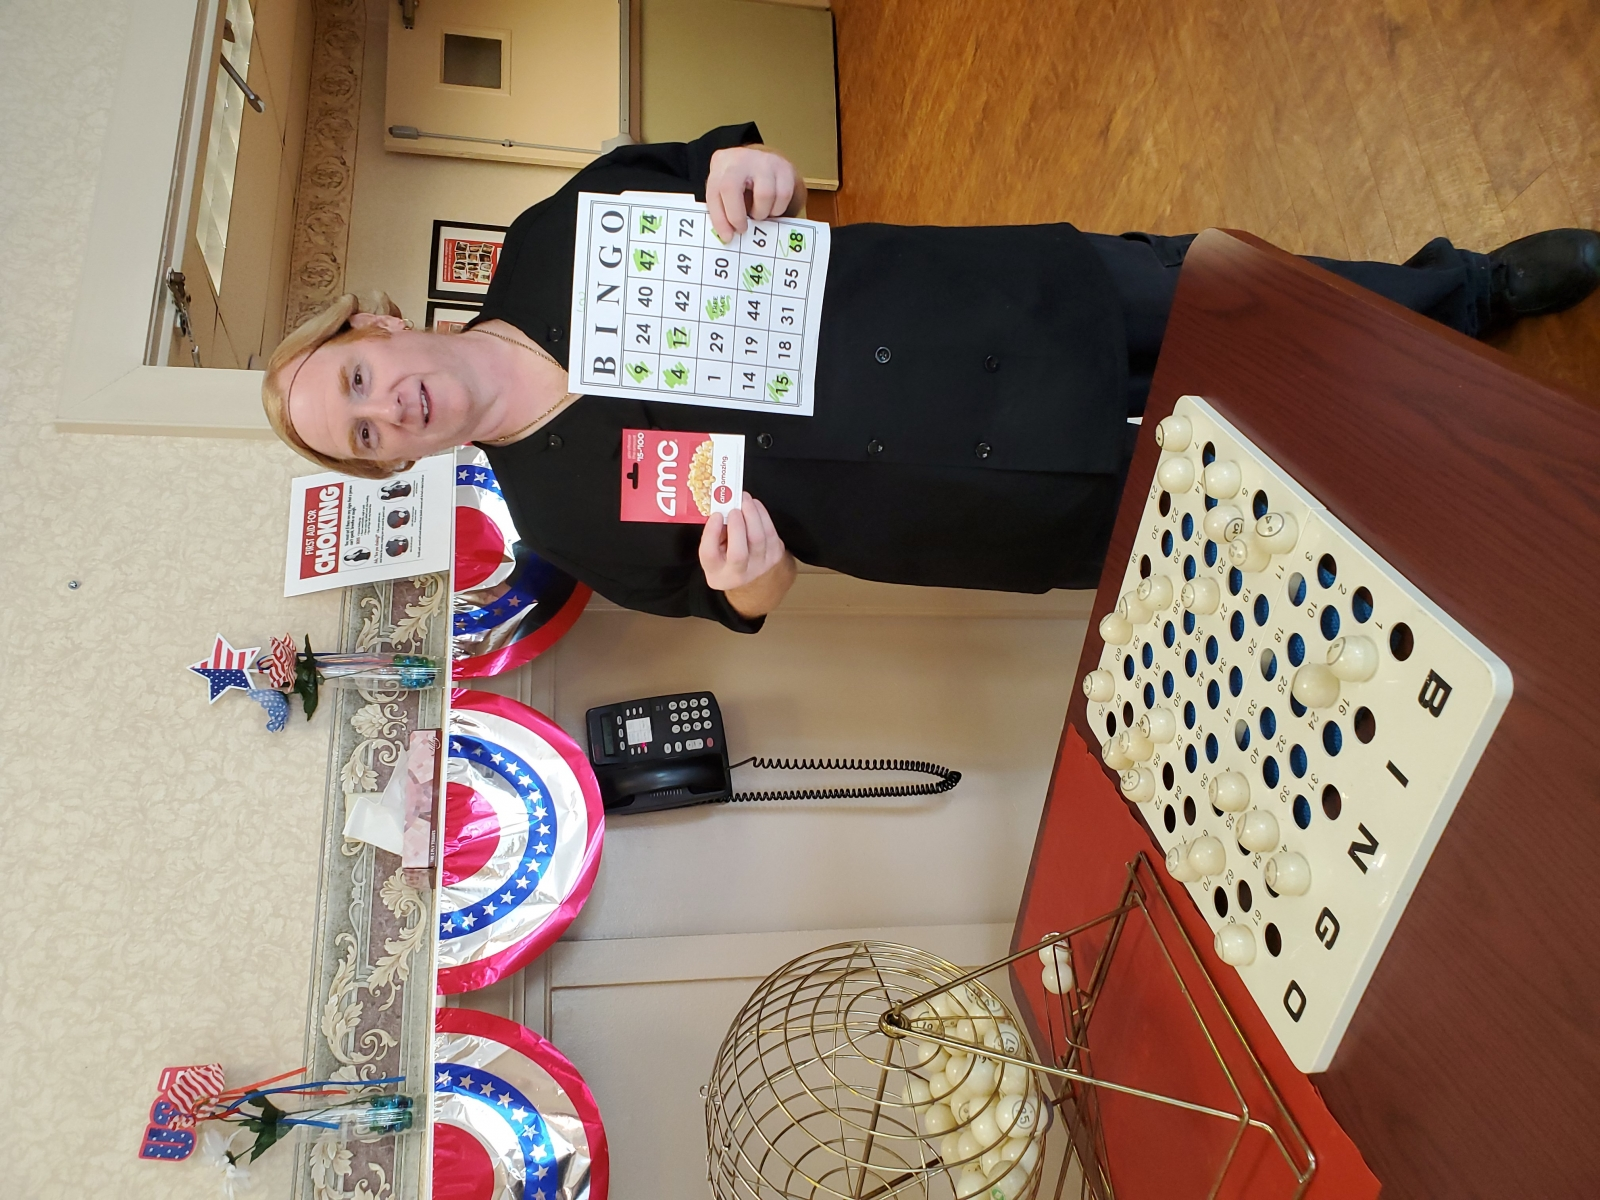 Crest-Pointe-Employee-Survey-Success-Week-July-2-Bingo-Winner-Lou-Dietary